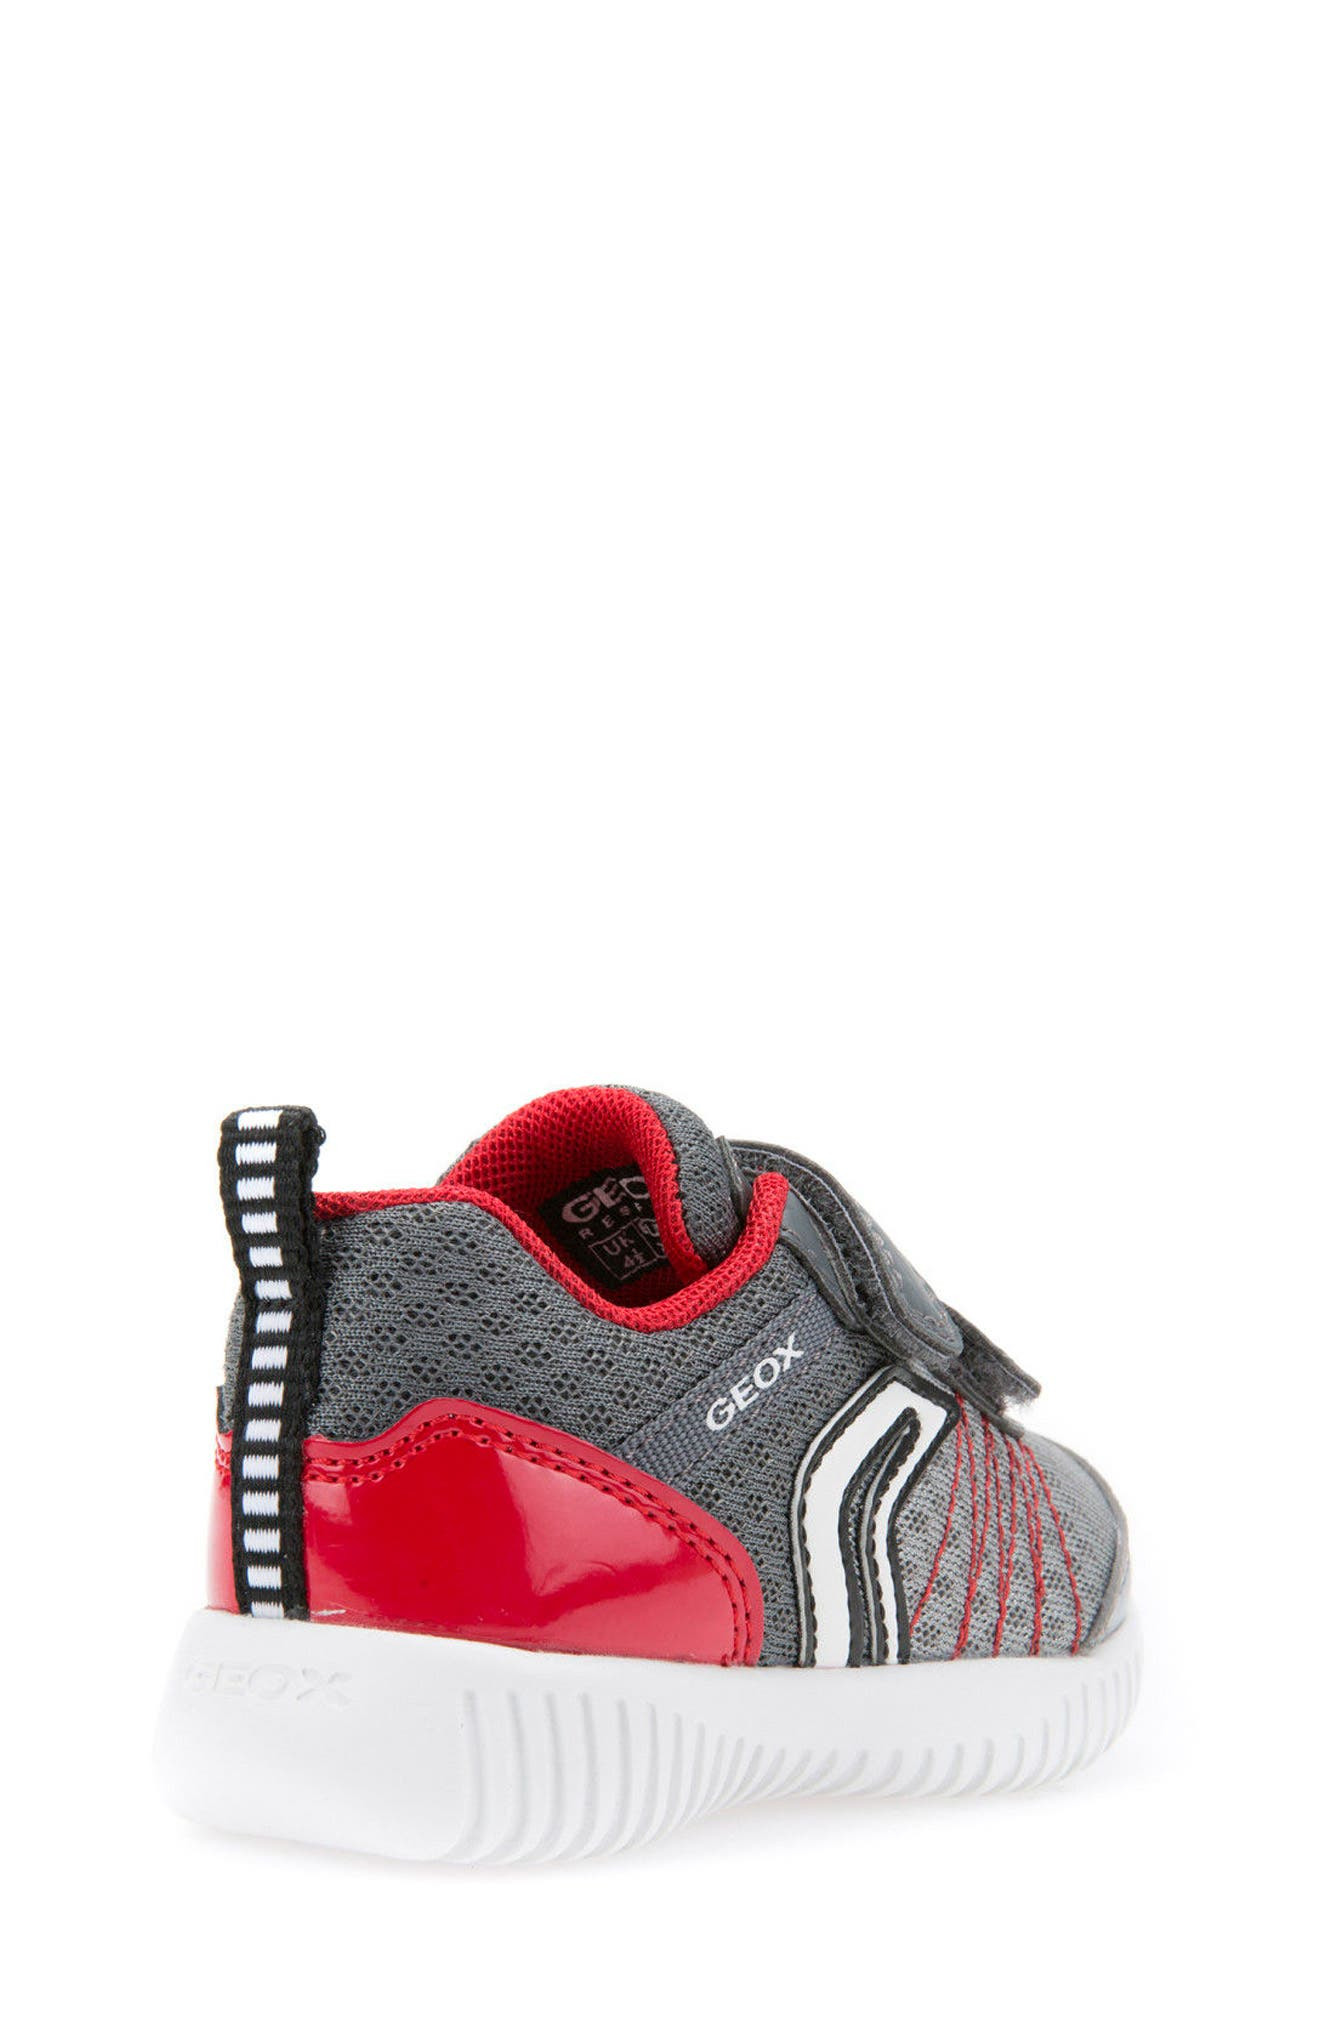 Waviness Sneaker,                             Alternate thumbnail 2, color,                             Grey/ Red